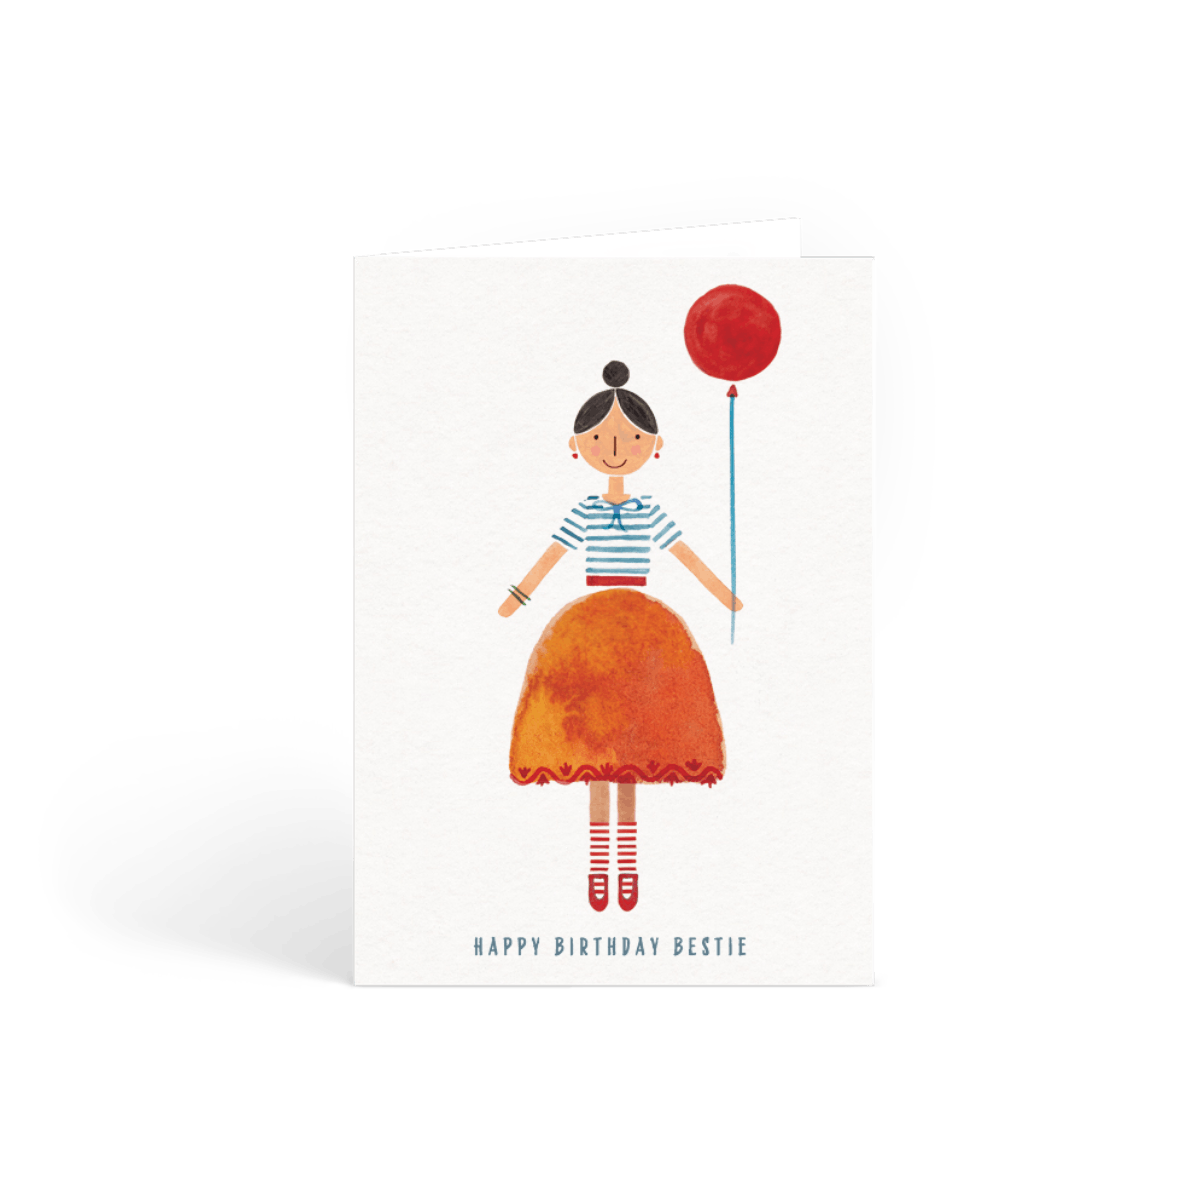 Https%3a%2f%2fwww.papier.com%2fproduct image%2f49007%2f2%2fa lady and her balloon 12055 front 1542379995.png?ixlib=rb 1.1